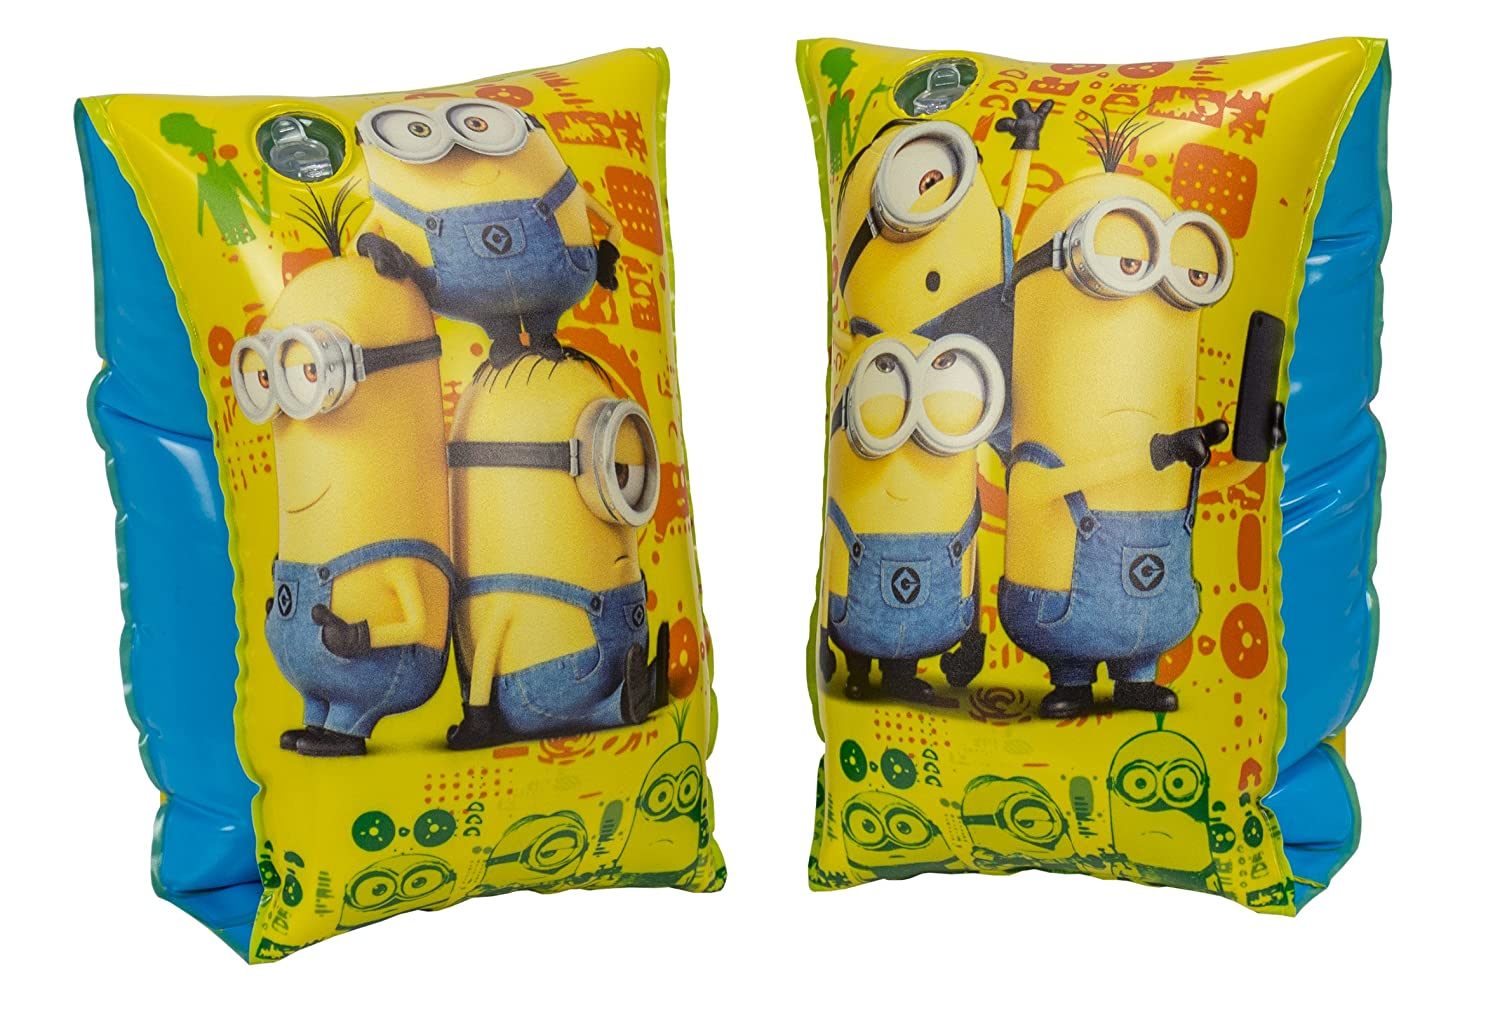 Saica Minions Set Manguitos hinchables 2815: Amazon.es: Juguetes y ...